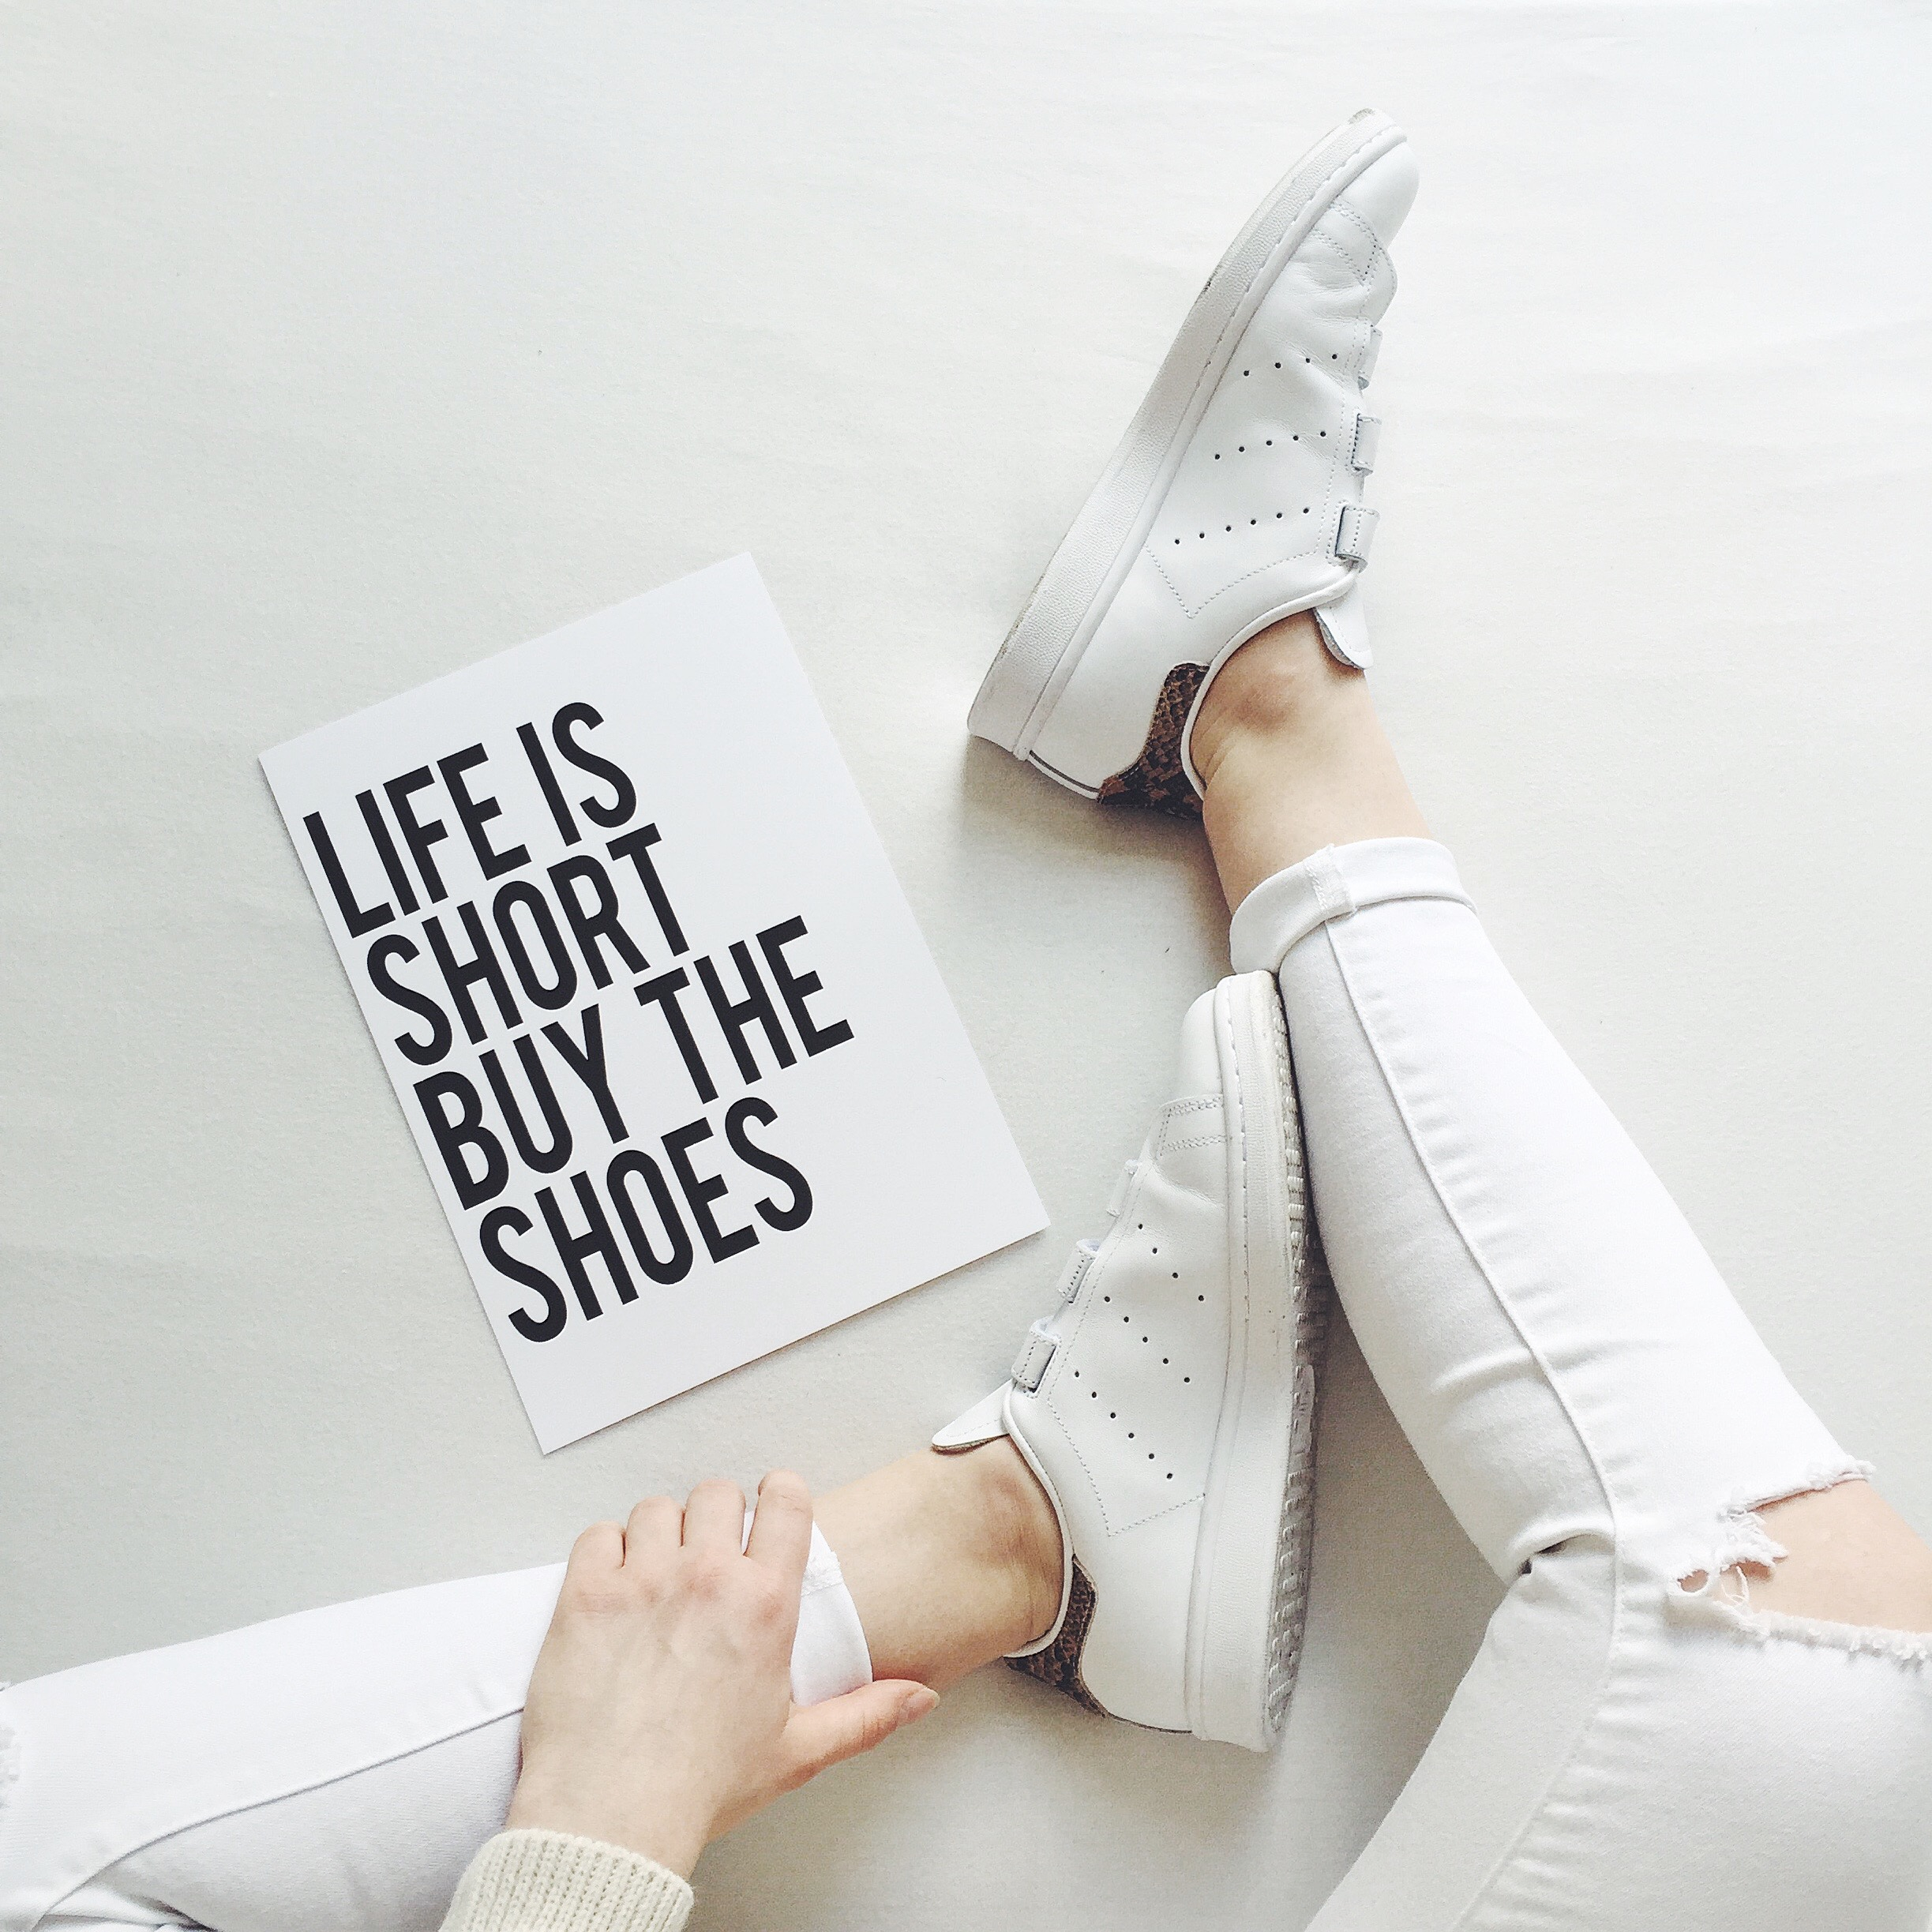 Life is short buy the shoes Projekt Stil Postkarte Poster Print Adventskalender